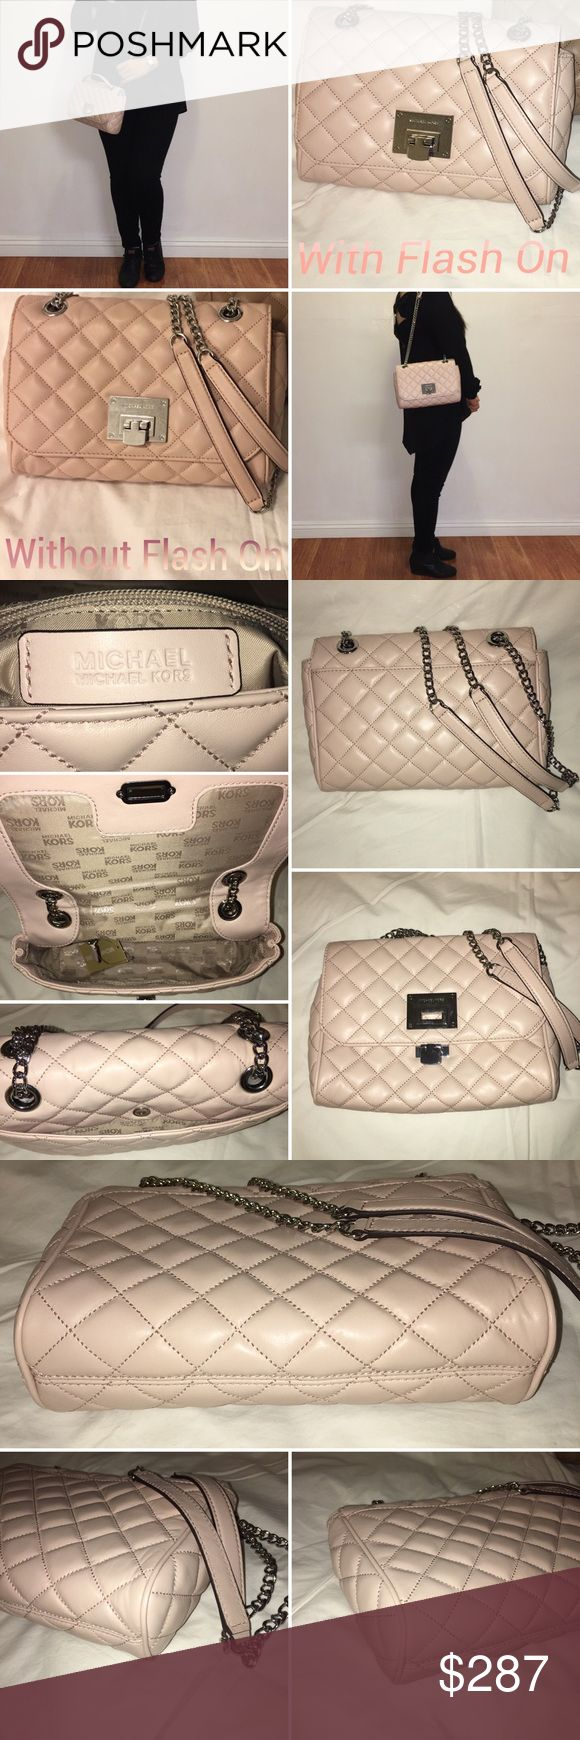 "NEW Michael Kors Quilted Flap Bag NEW Authentic Michael Kors Quilted Flap Bag  Cross body / shoulder bag  Lamb Skin & Silver Tone Hardware  Condition: Brand New with tags  Color: Ballet (Very Light Ballerina Pink)   Approx measurements 12""L x 7.5""H x 3.75""W Adjustable braided chain link and leather straps with 12""- 24"" strap drop MK signature fabric lining Exterior one large open slip pocket at back Interior one large zip, one multi-function slip pocket. *All photos taken with Flash On…"